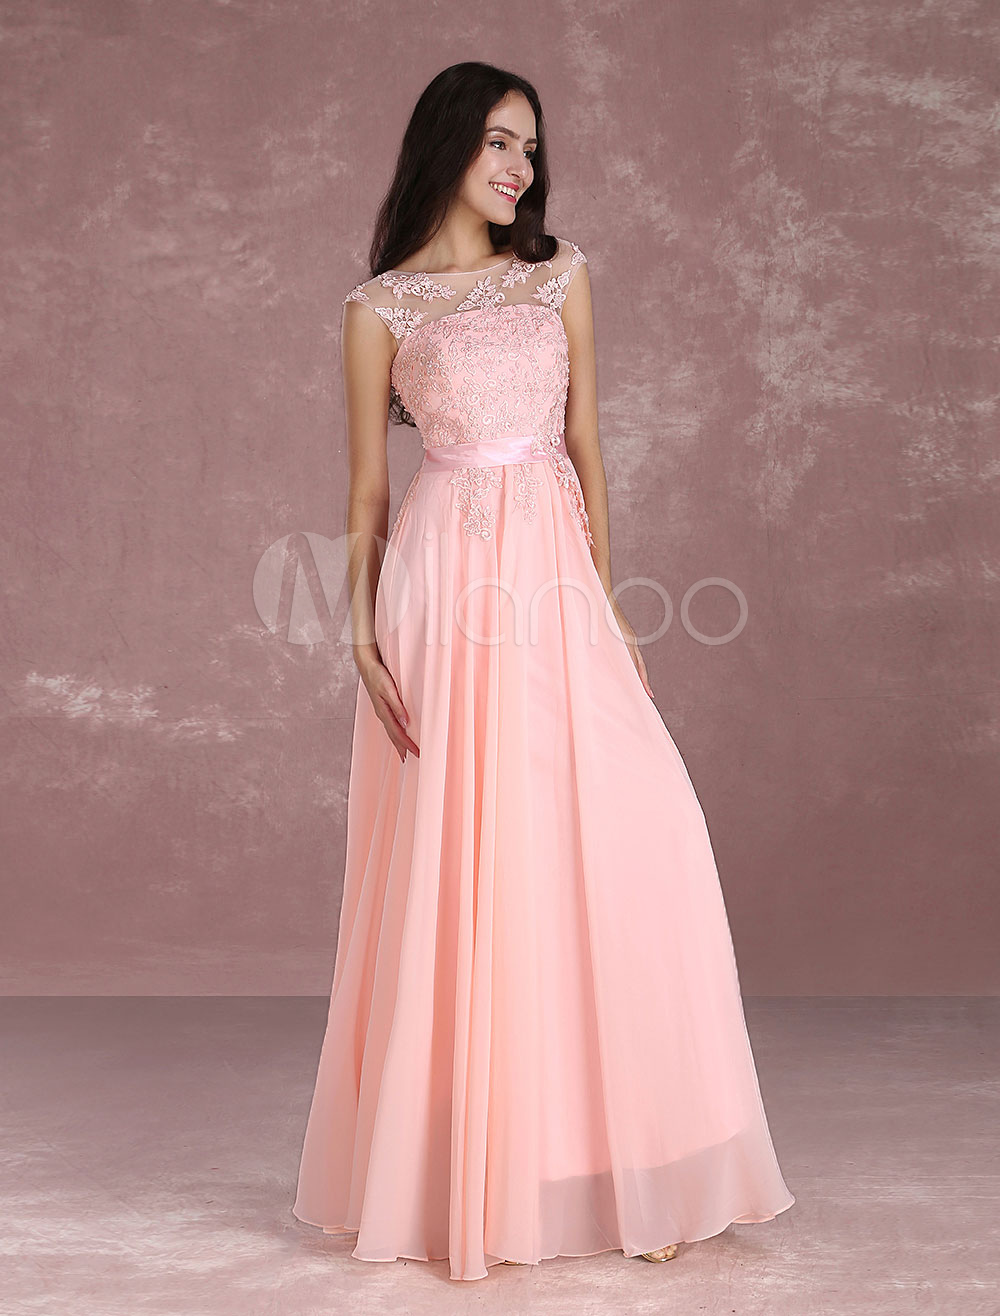 Nude Prom Dresses 2020 Long Chiffon Lace Beading Illusion Occasion Dress Sweatheart Floor Length Party Dress